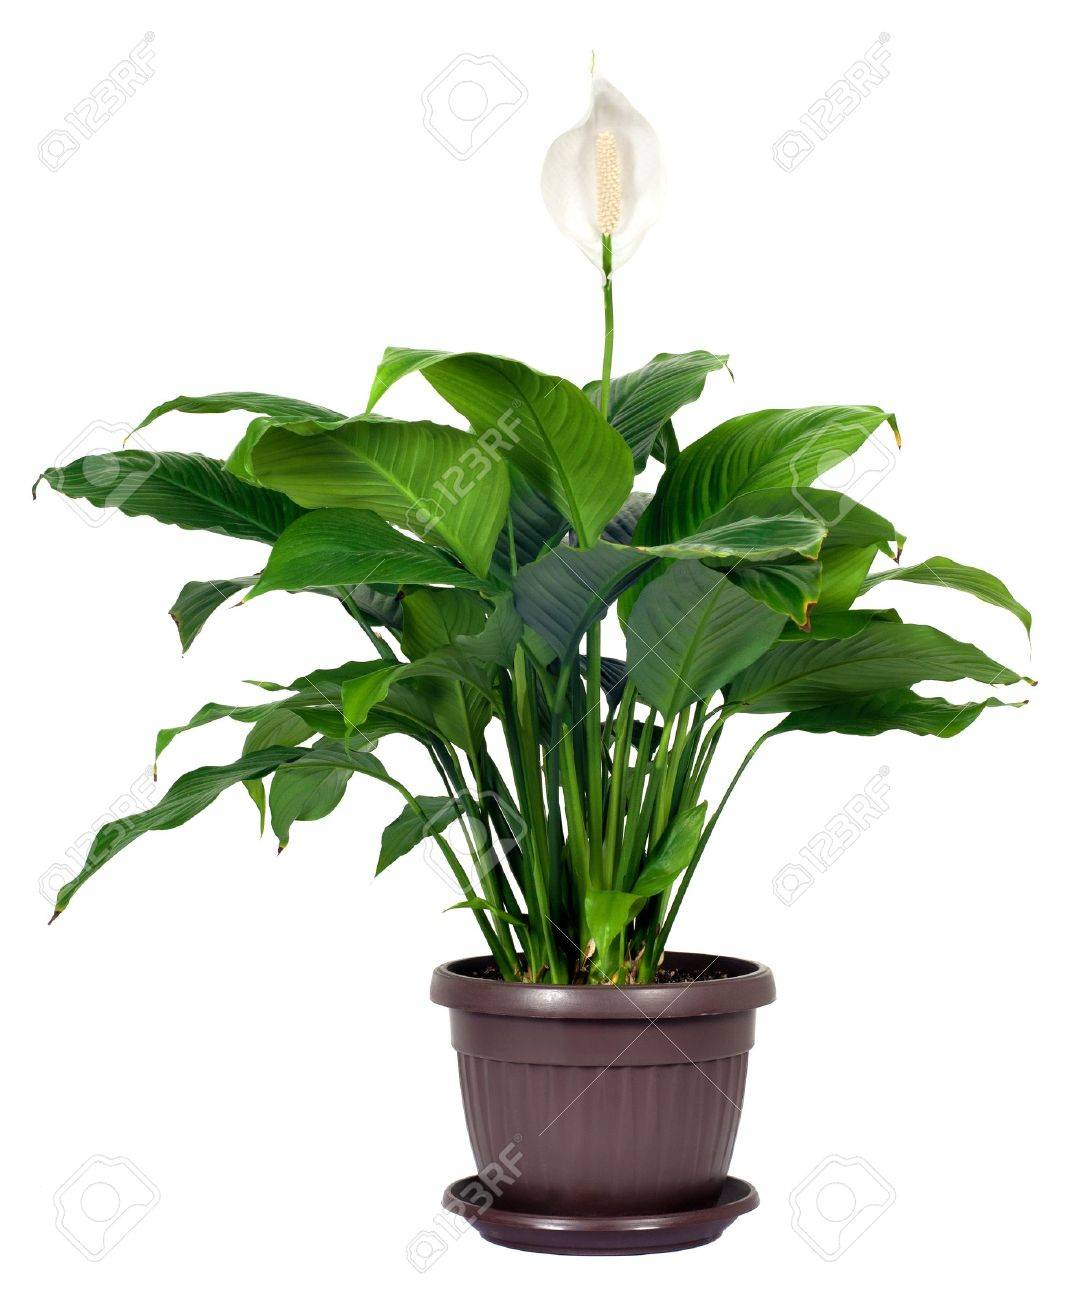 Houseplant spathiphyllum floribundum peace lily white flower houseplant spathiphyllum floribundum peace lily white flower isolated on white background stock photo 13292454 dhlflorist Gallery